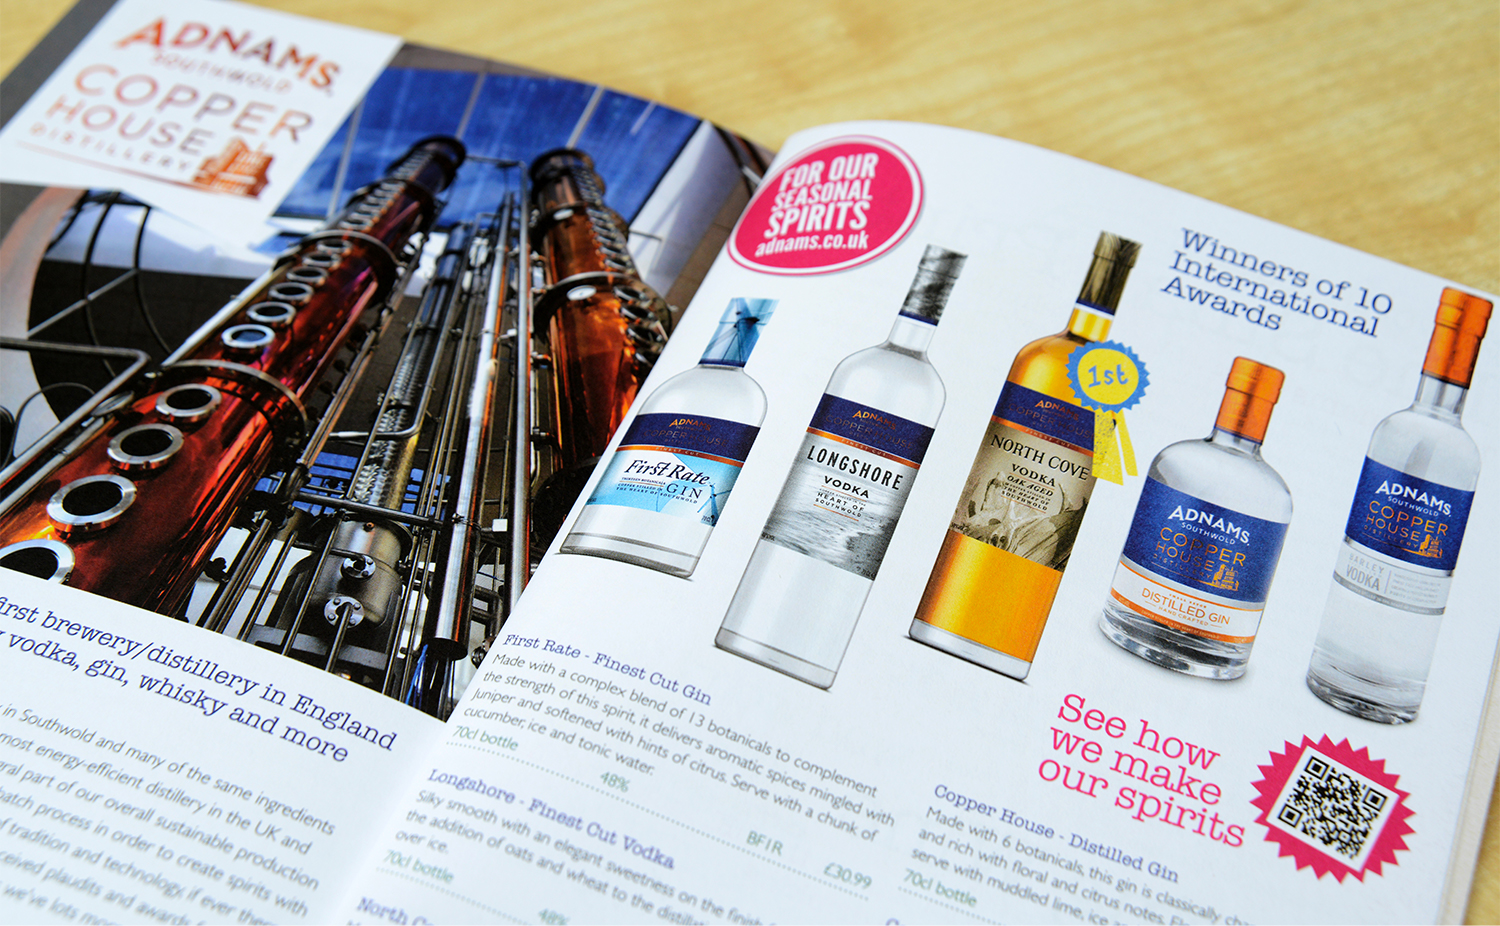 Adnams winebook inside pages